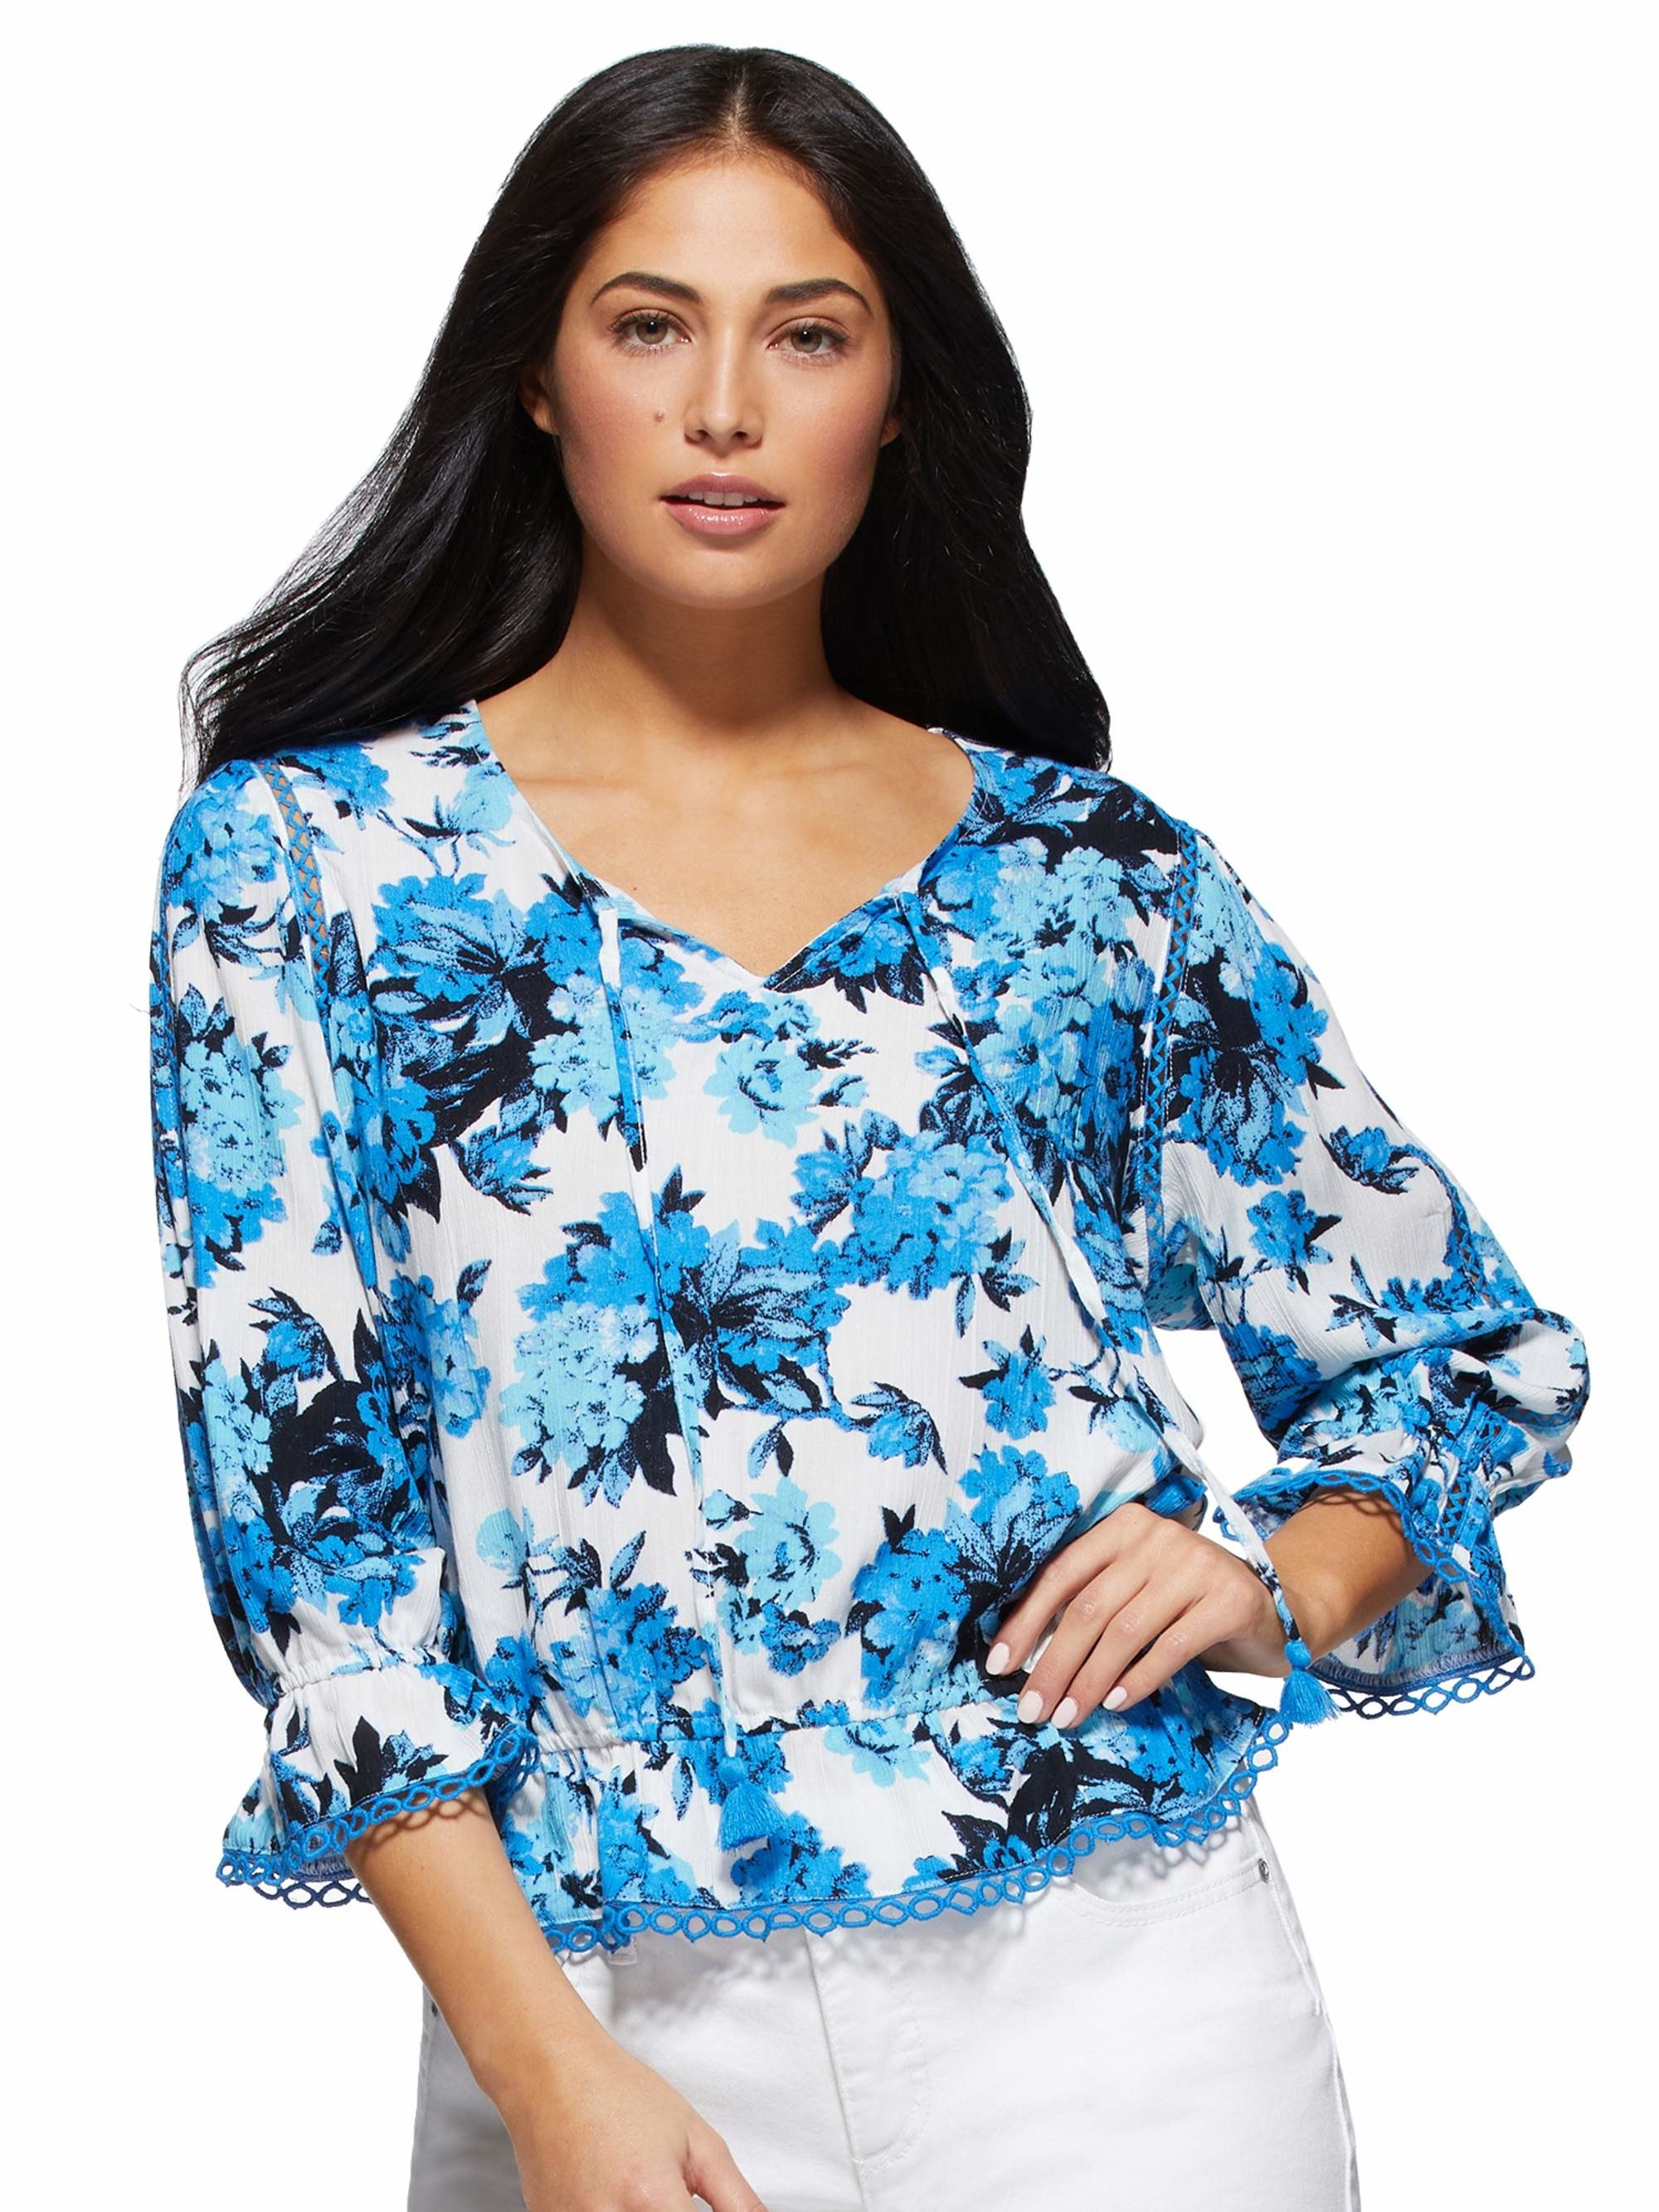 The bright blue floral blouse with eyelet hem